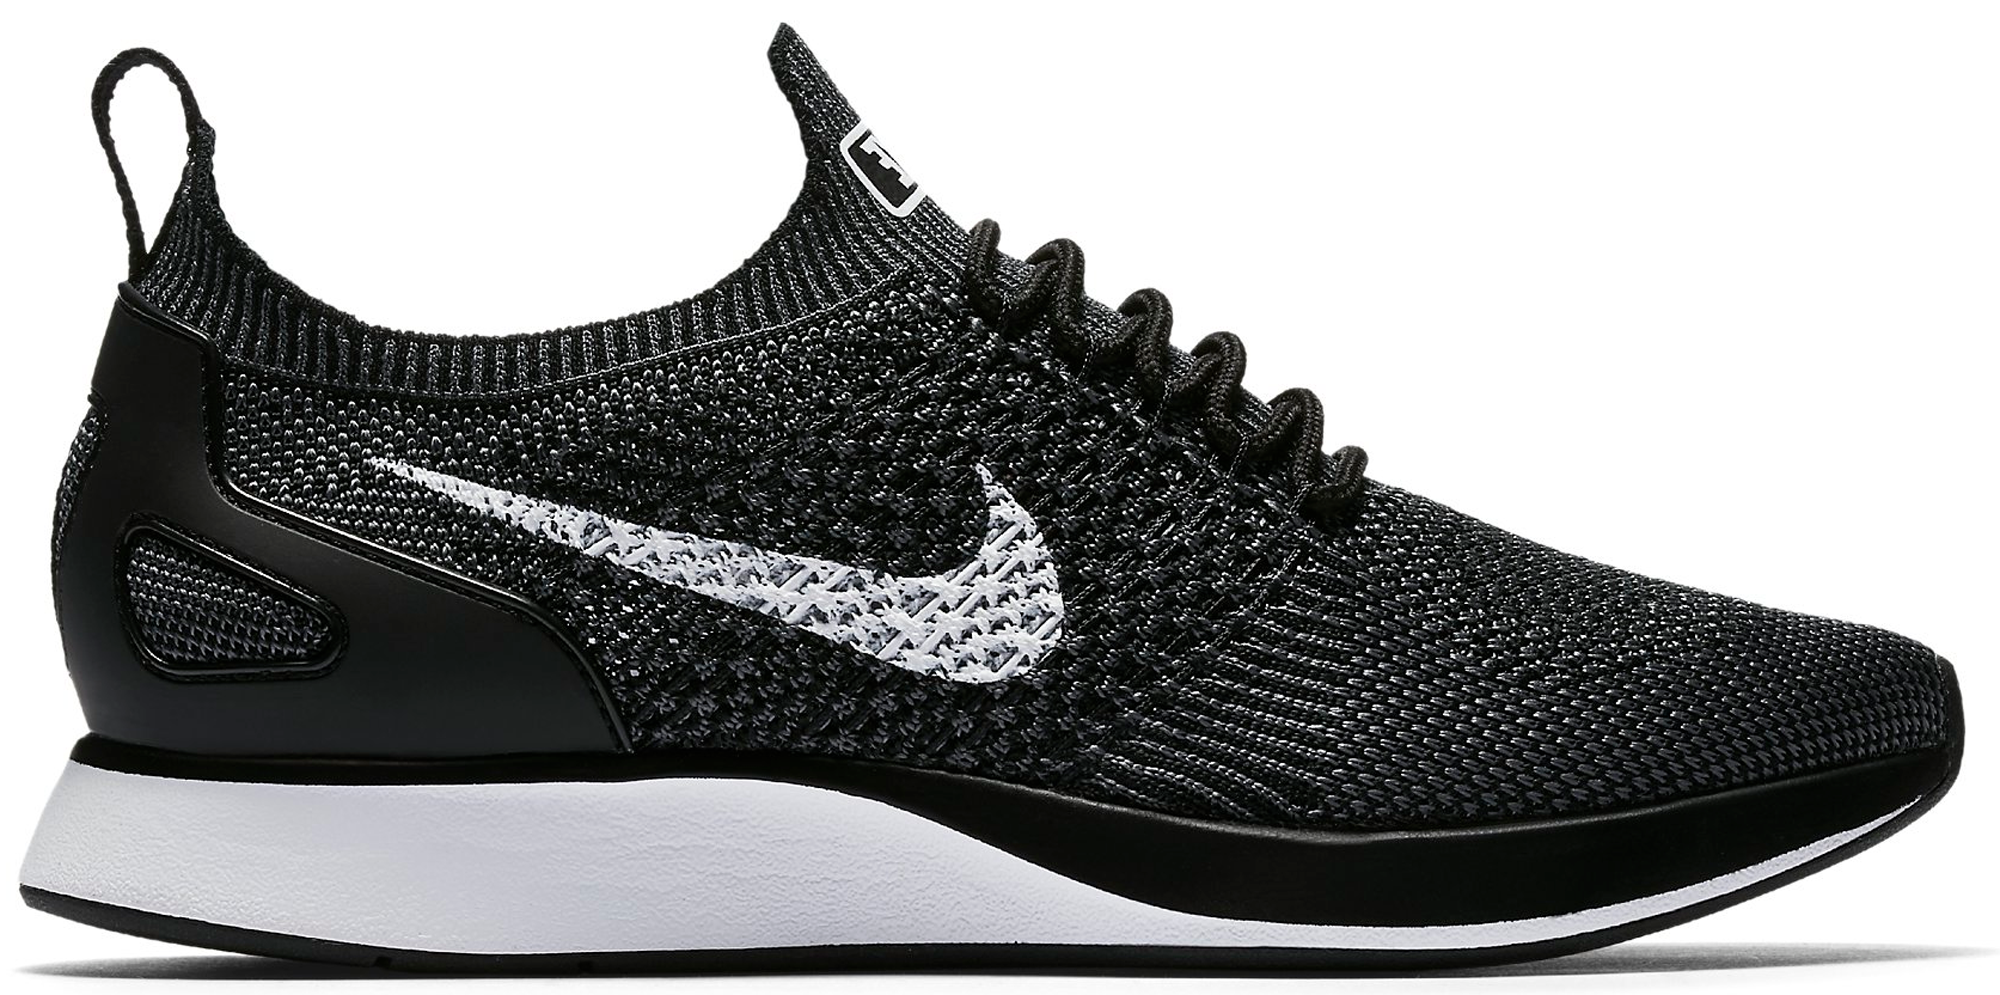 b3457b1d30bba6 Nike Air Zoom Mariah Flyknit Racer Premium Black White - StockX News